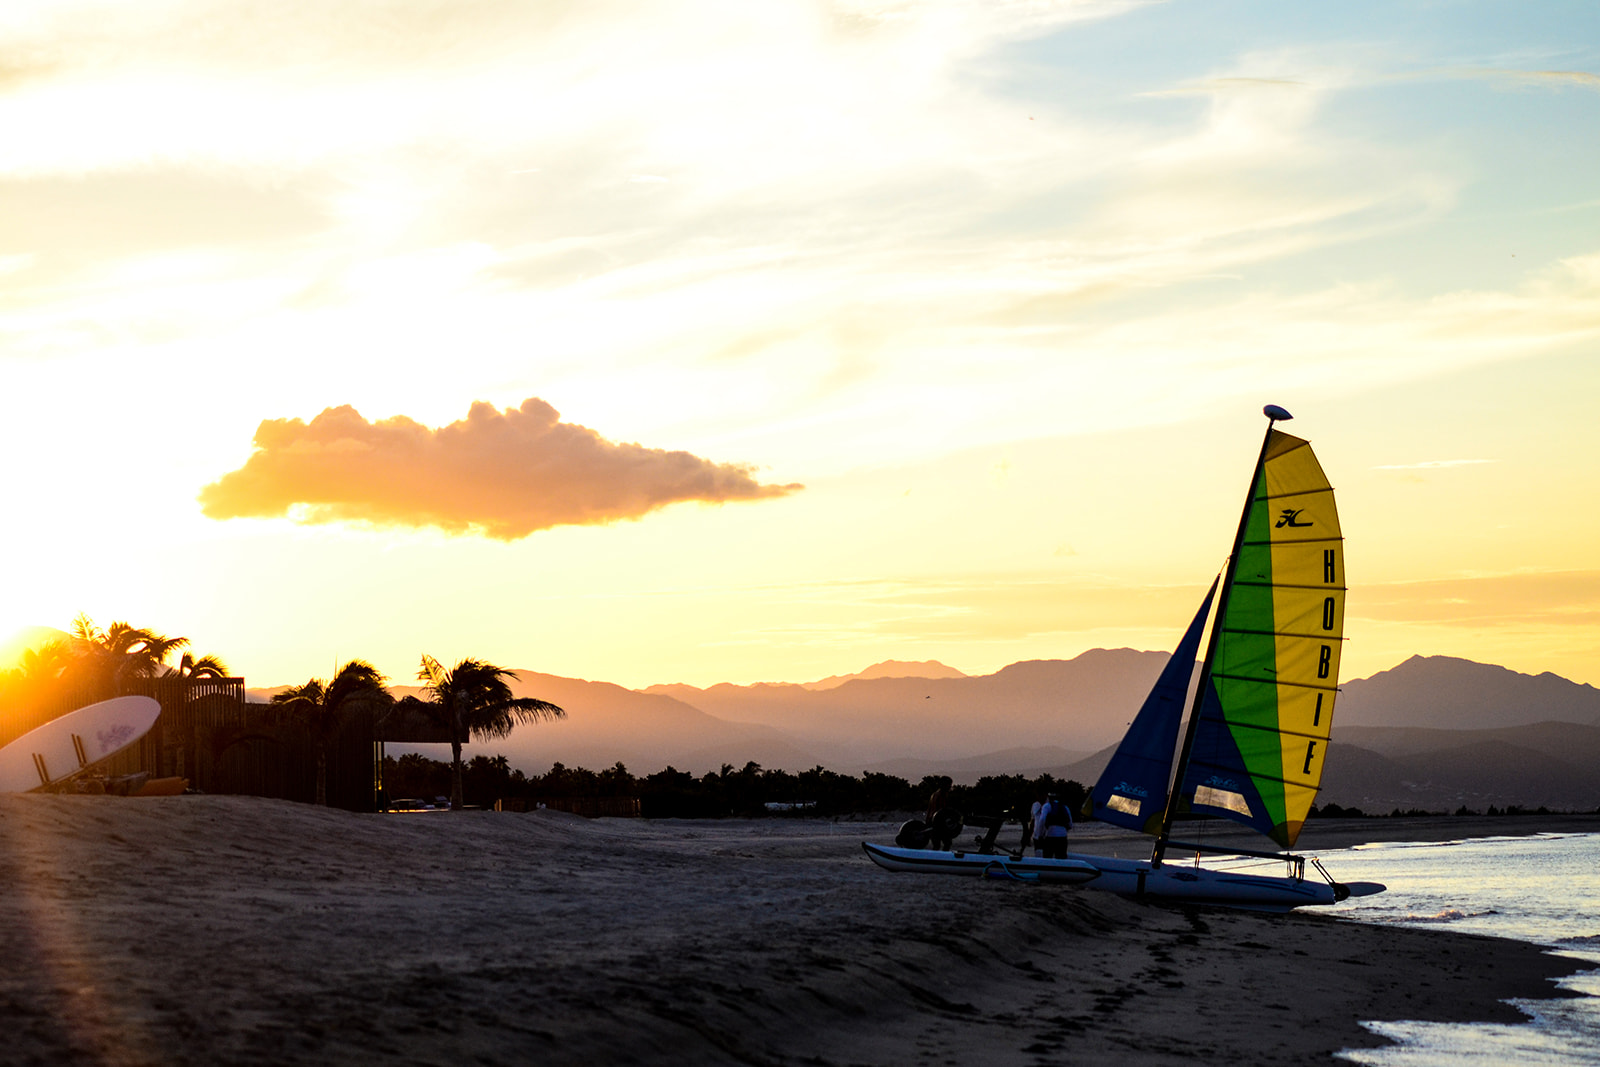 Beach at sunset with sailboat